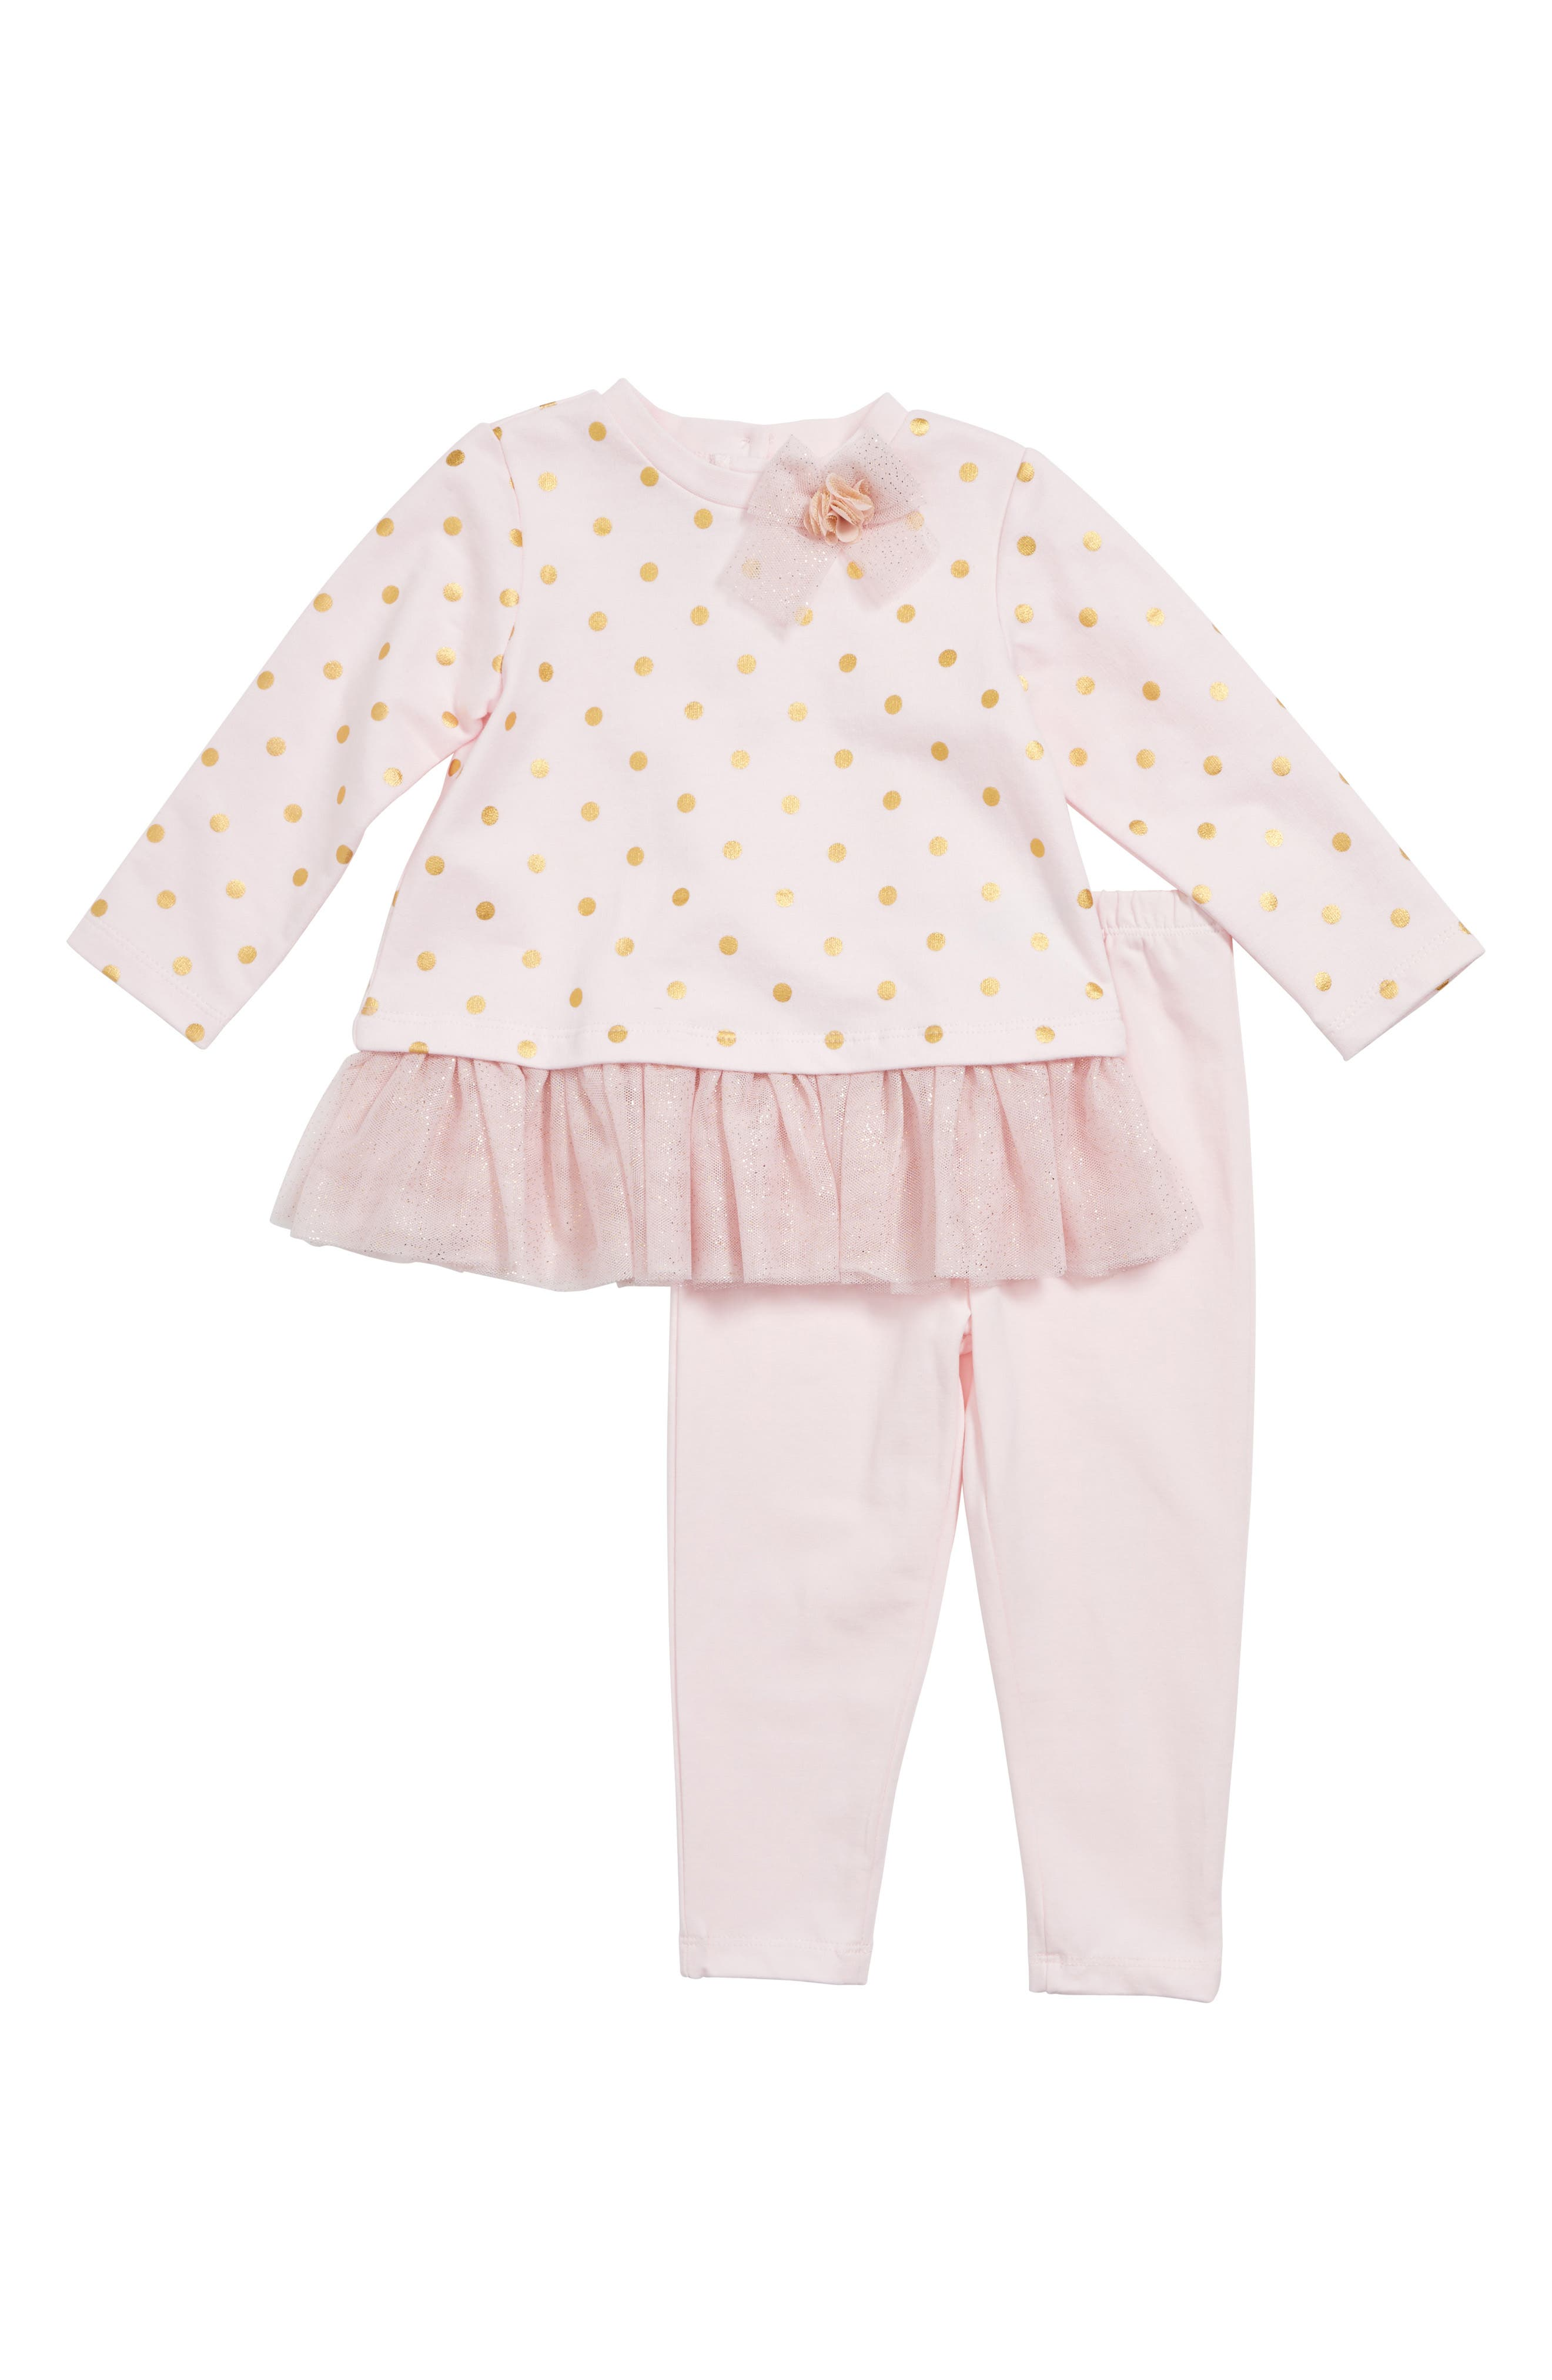 Baby Girl Clothes: Dresses, Bodysuits & Footies | Nordstrom